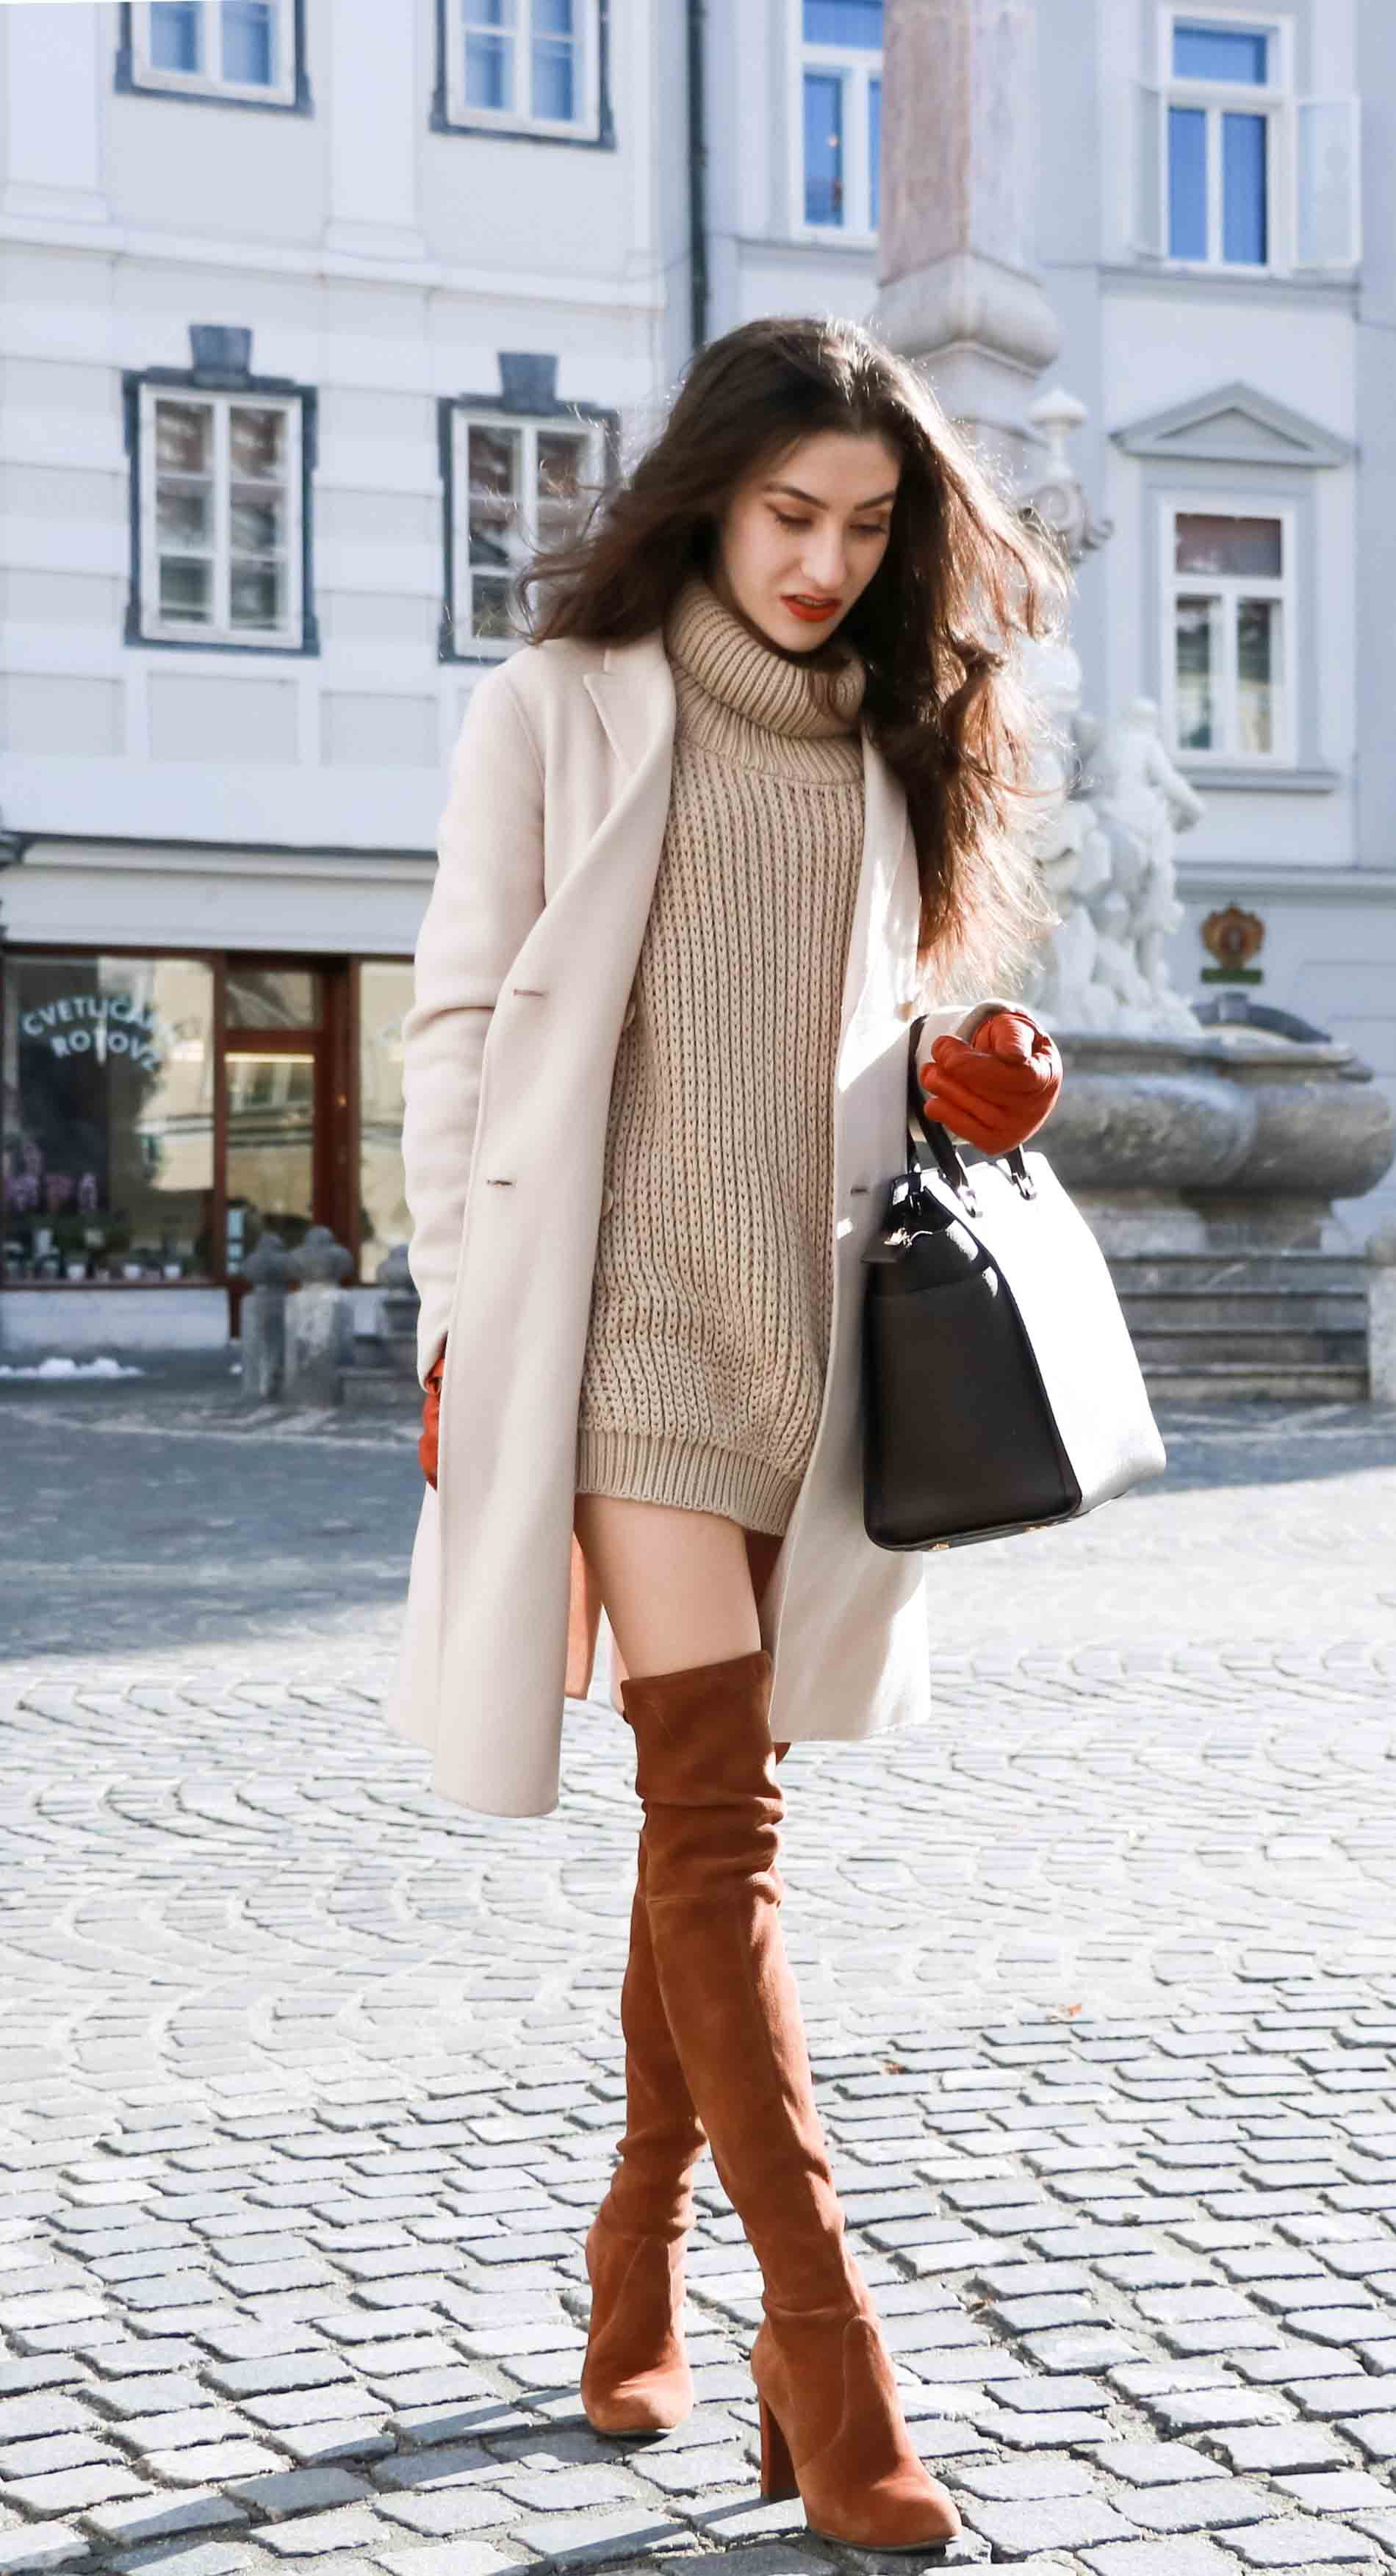 Fashion Blogger Veronika Lipar of Brunette from Wall wearing double breasted coat, cable knit turtleneck camel sweater dress and Stuart Weitzman over the knee boots, brown Michael Kors Selma bag, leather gloves